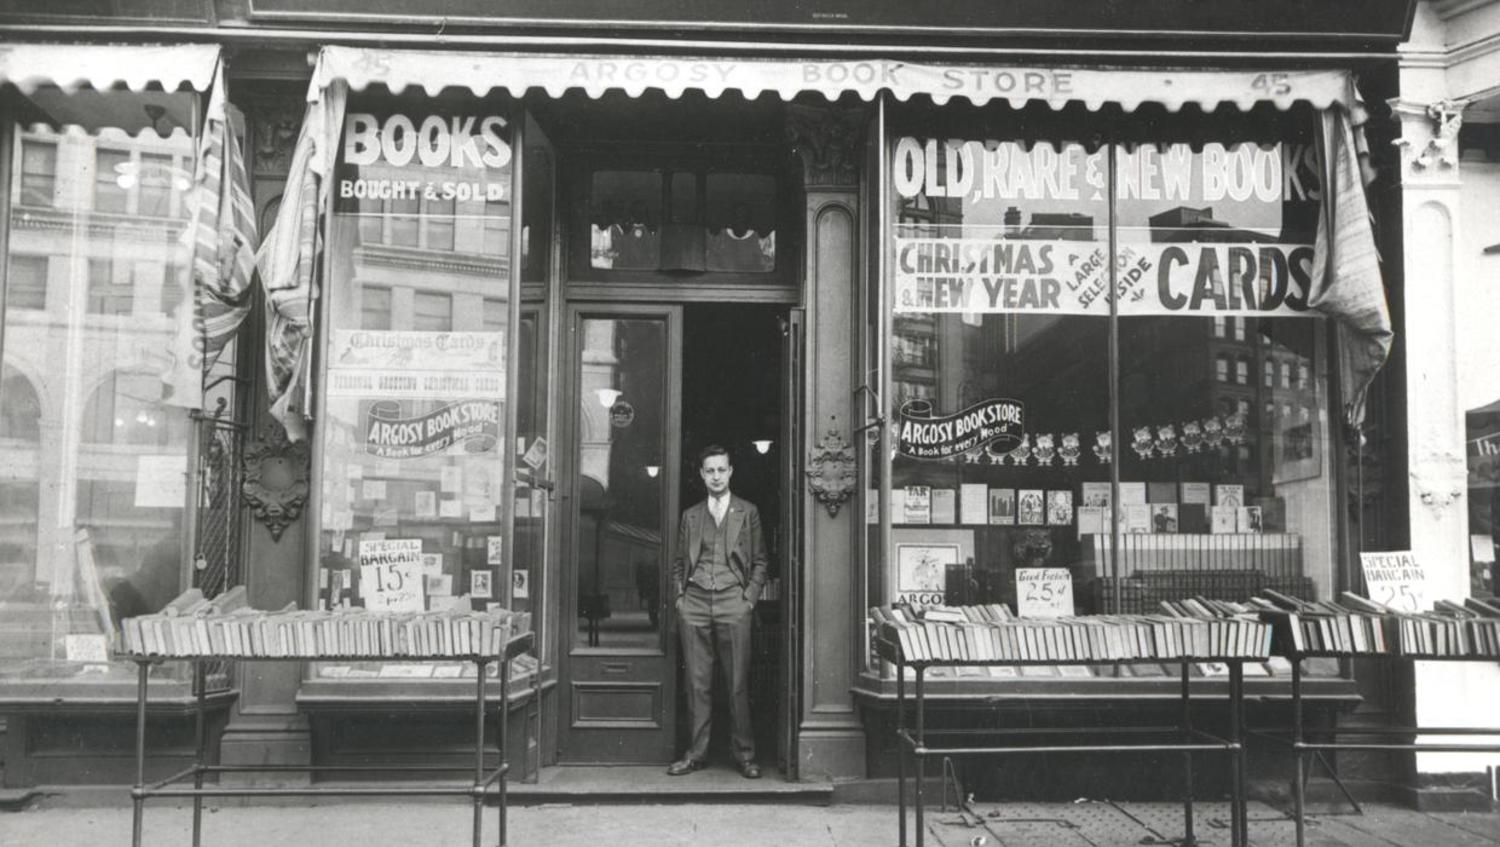 Original owner Louis Cohen opening the Argosy Bookstore in 1925